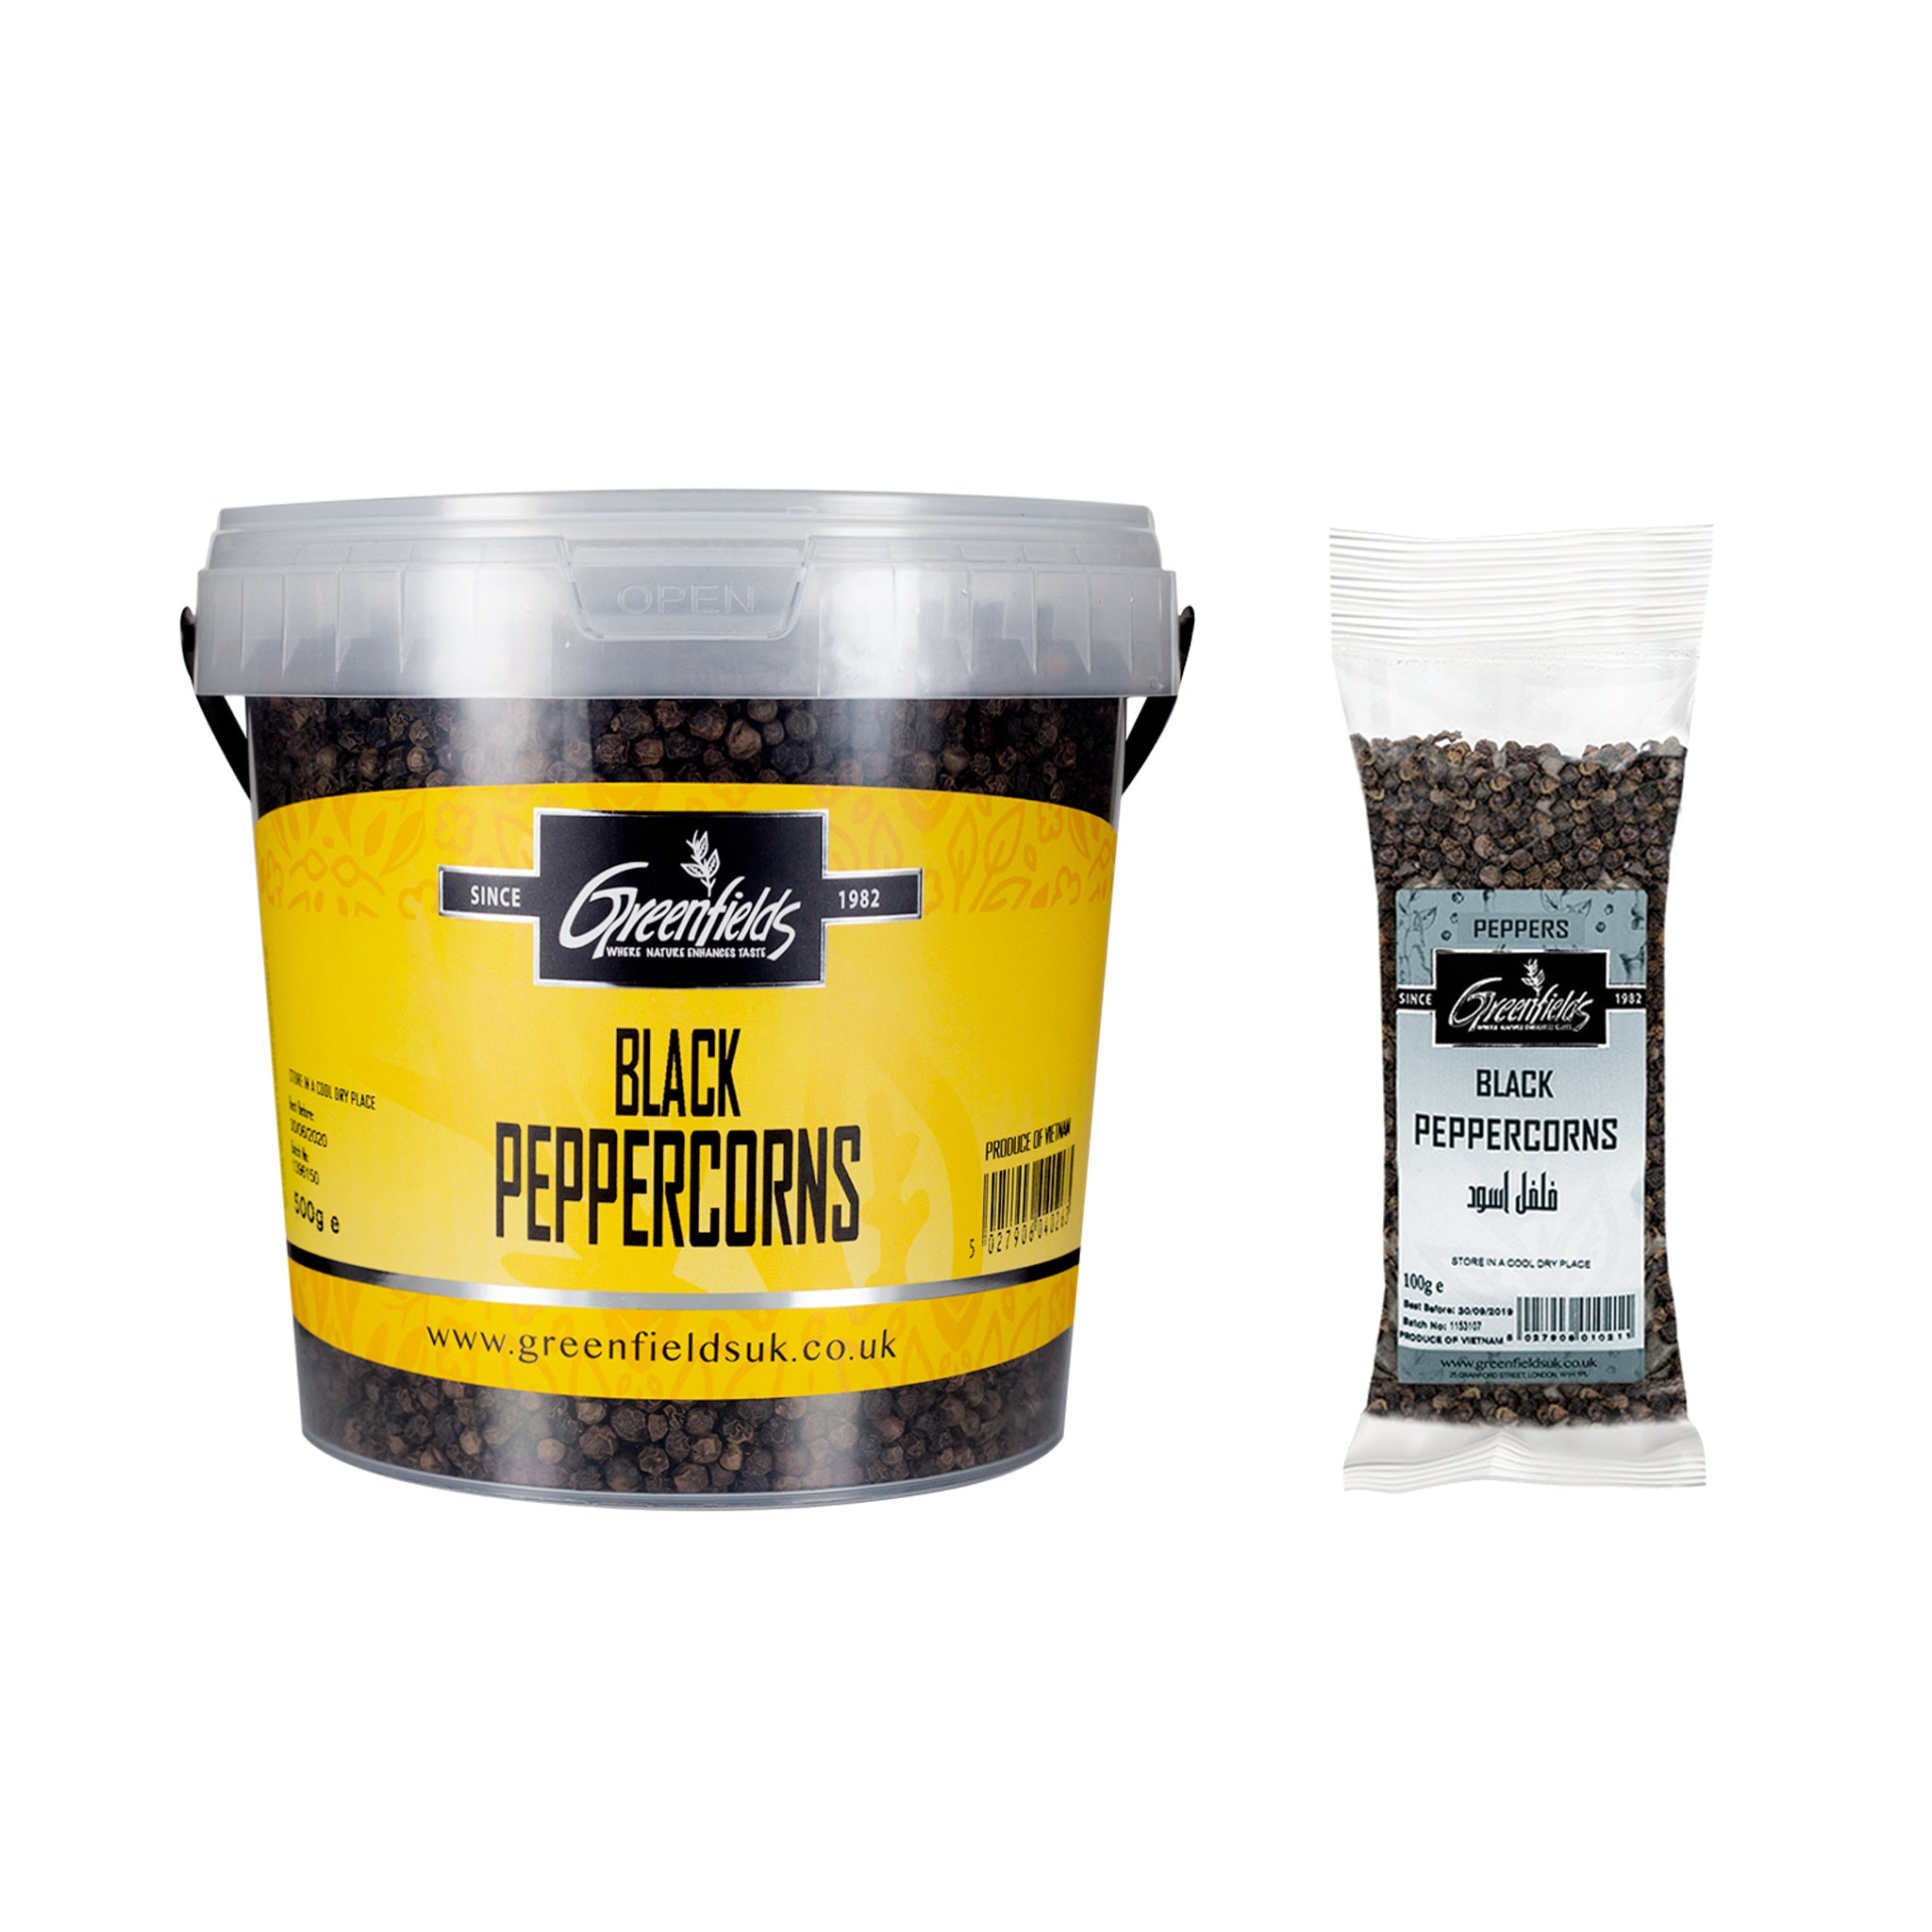 Greenfields Black Peppercorns